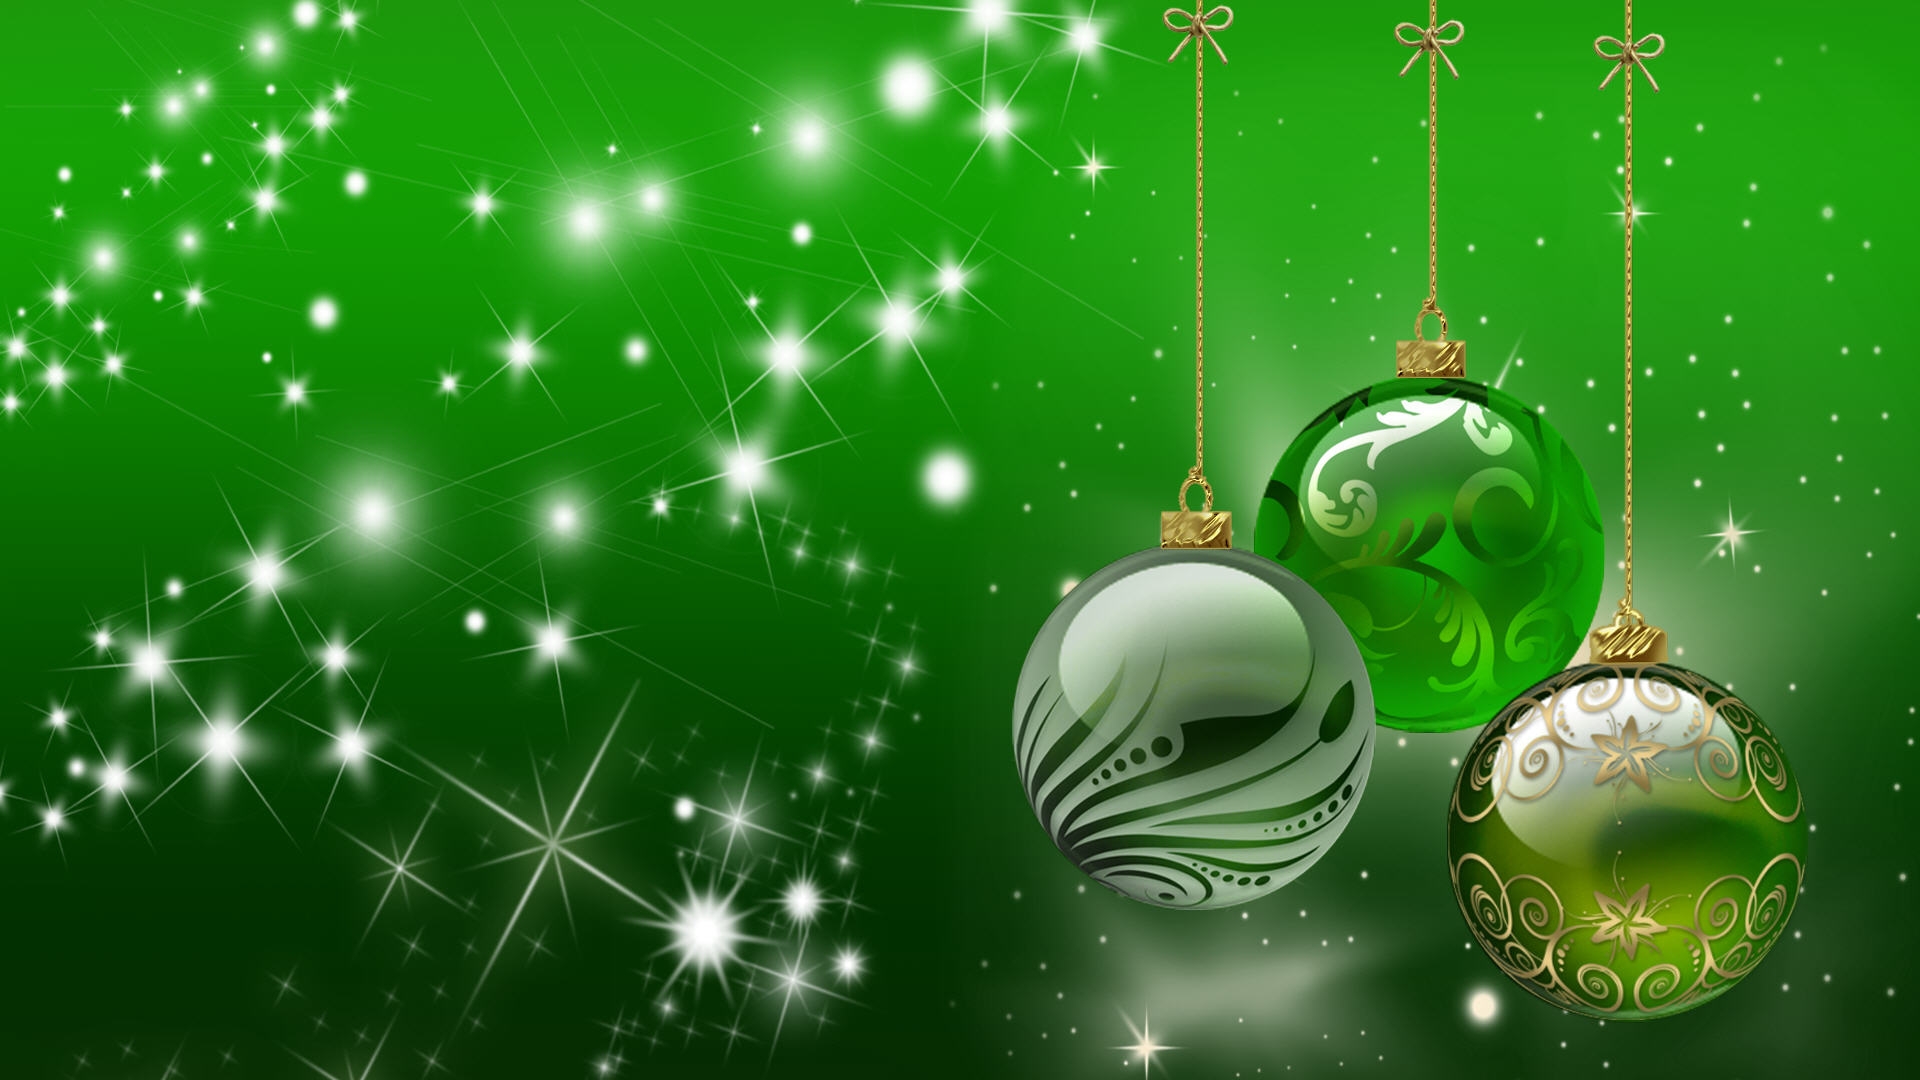 green holiday backgrounds 18367 1920x1080 px hdwallsource com